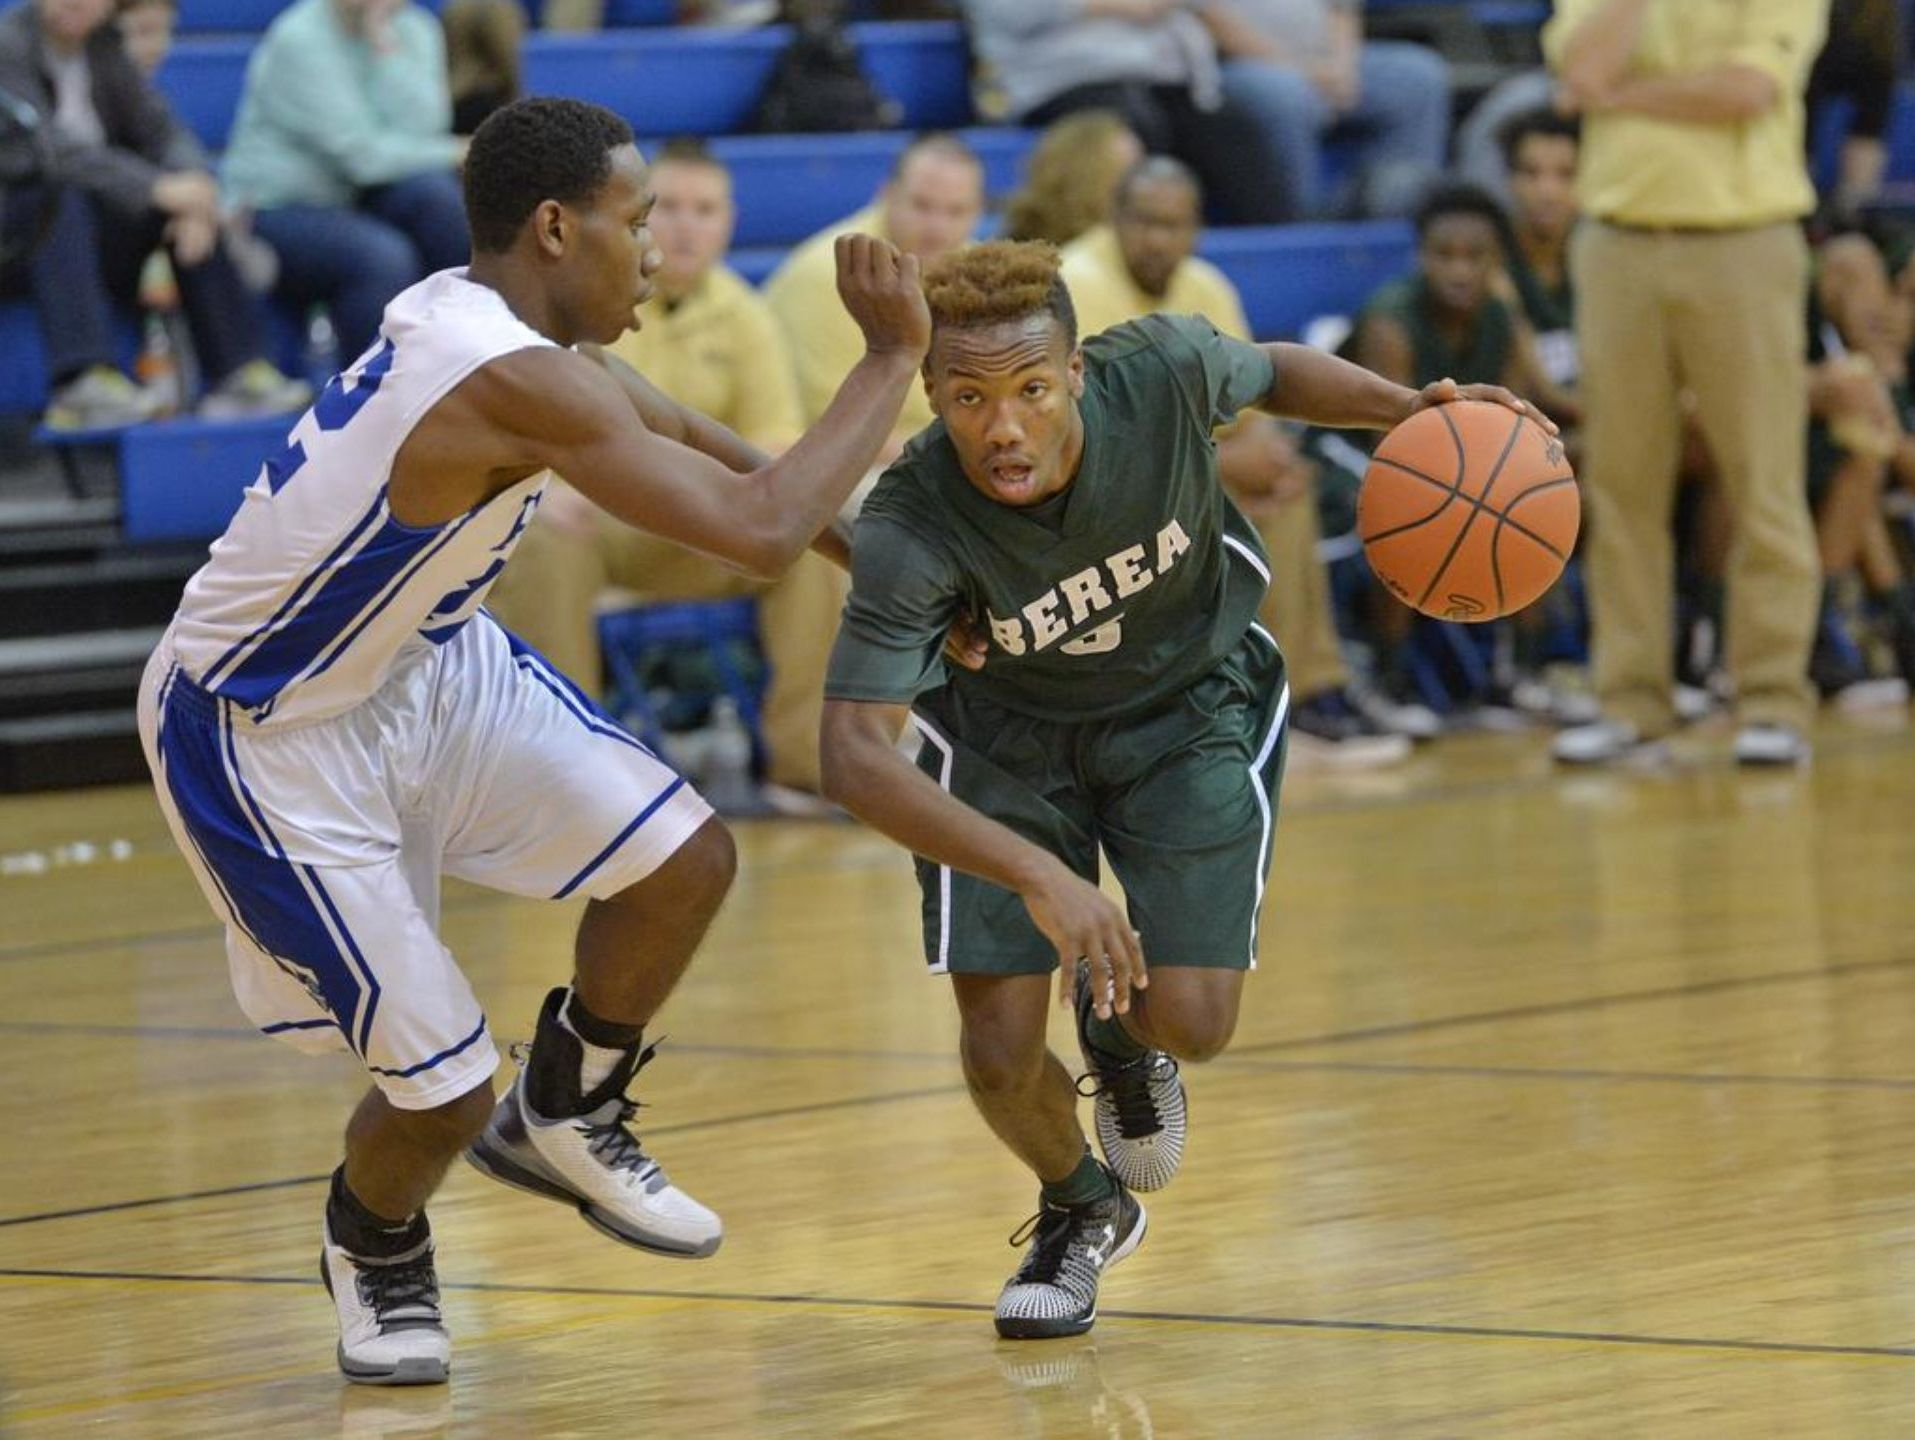 Senior guard Zay Ballenger, right, and the Berea Bulldogs will play at Southside Friday night in the Peach Blossom AAA Region opener for both teams.